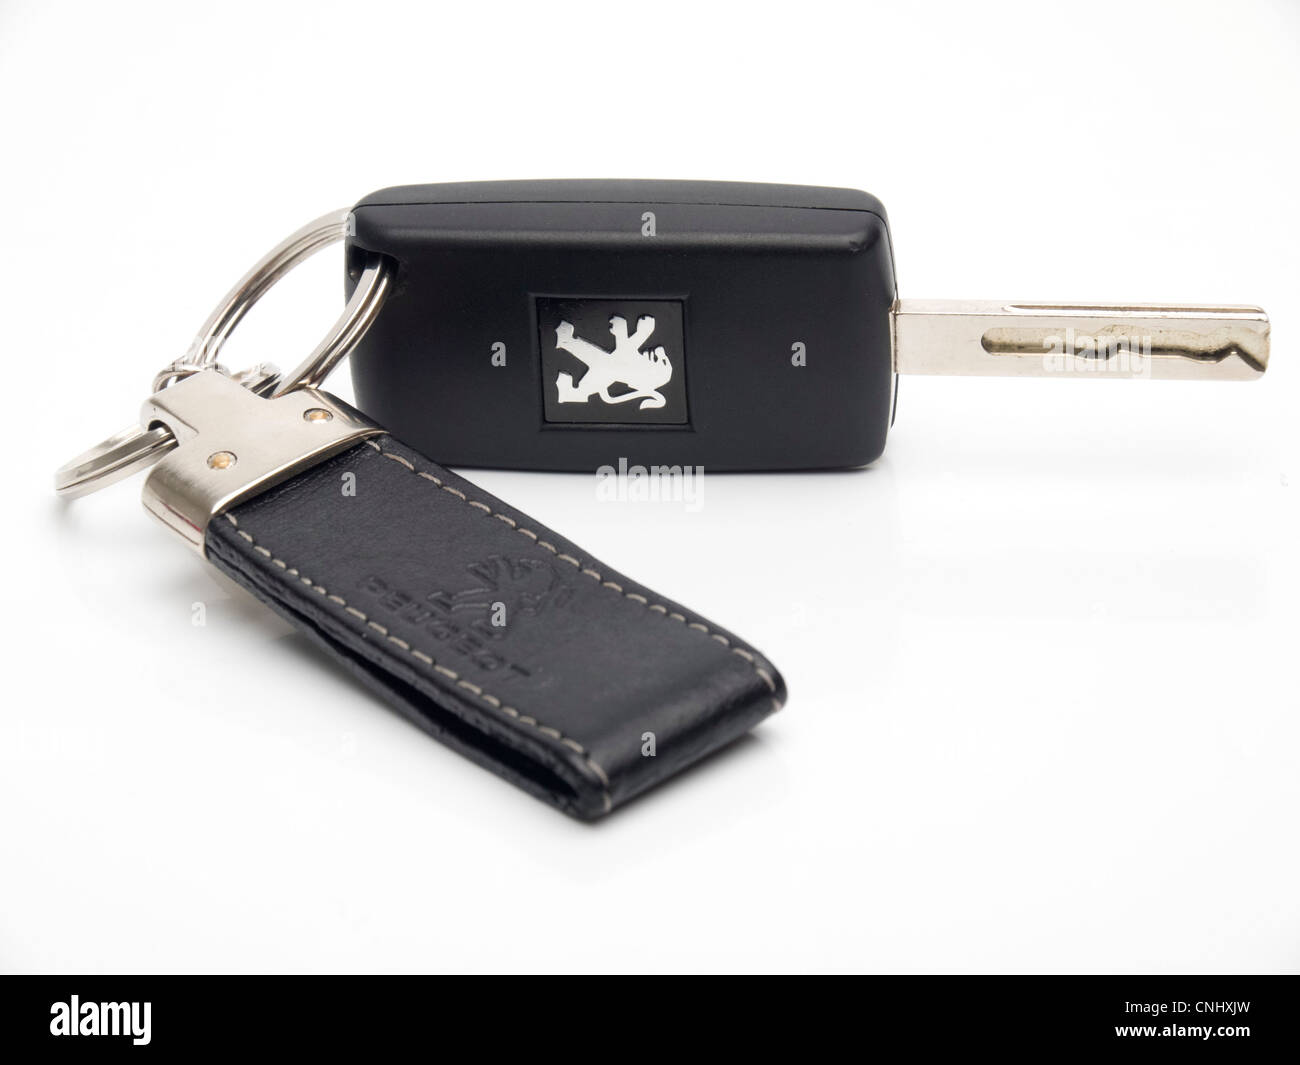 Peugeot car keys with leather keychain - Stock Image